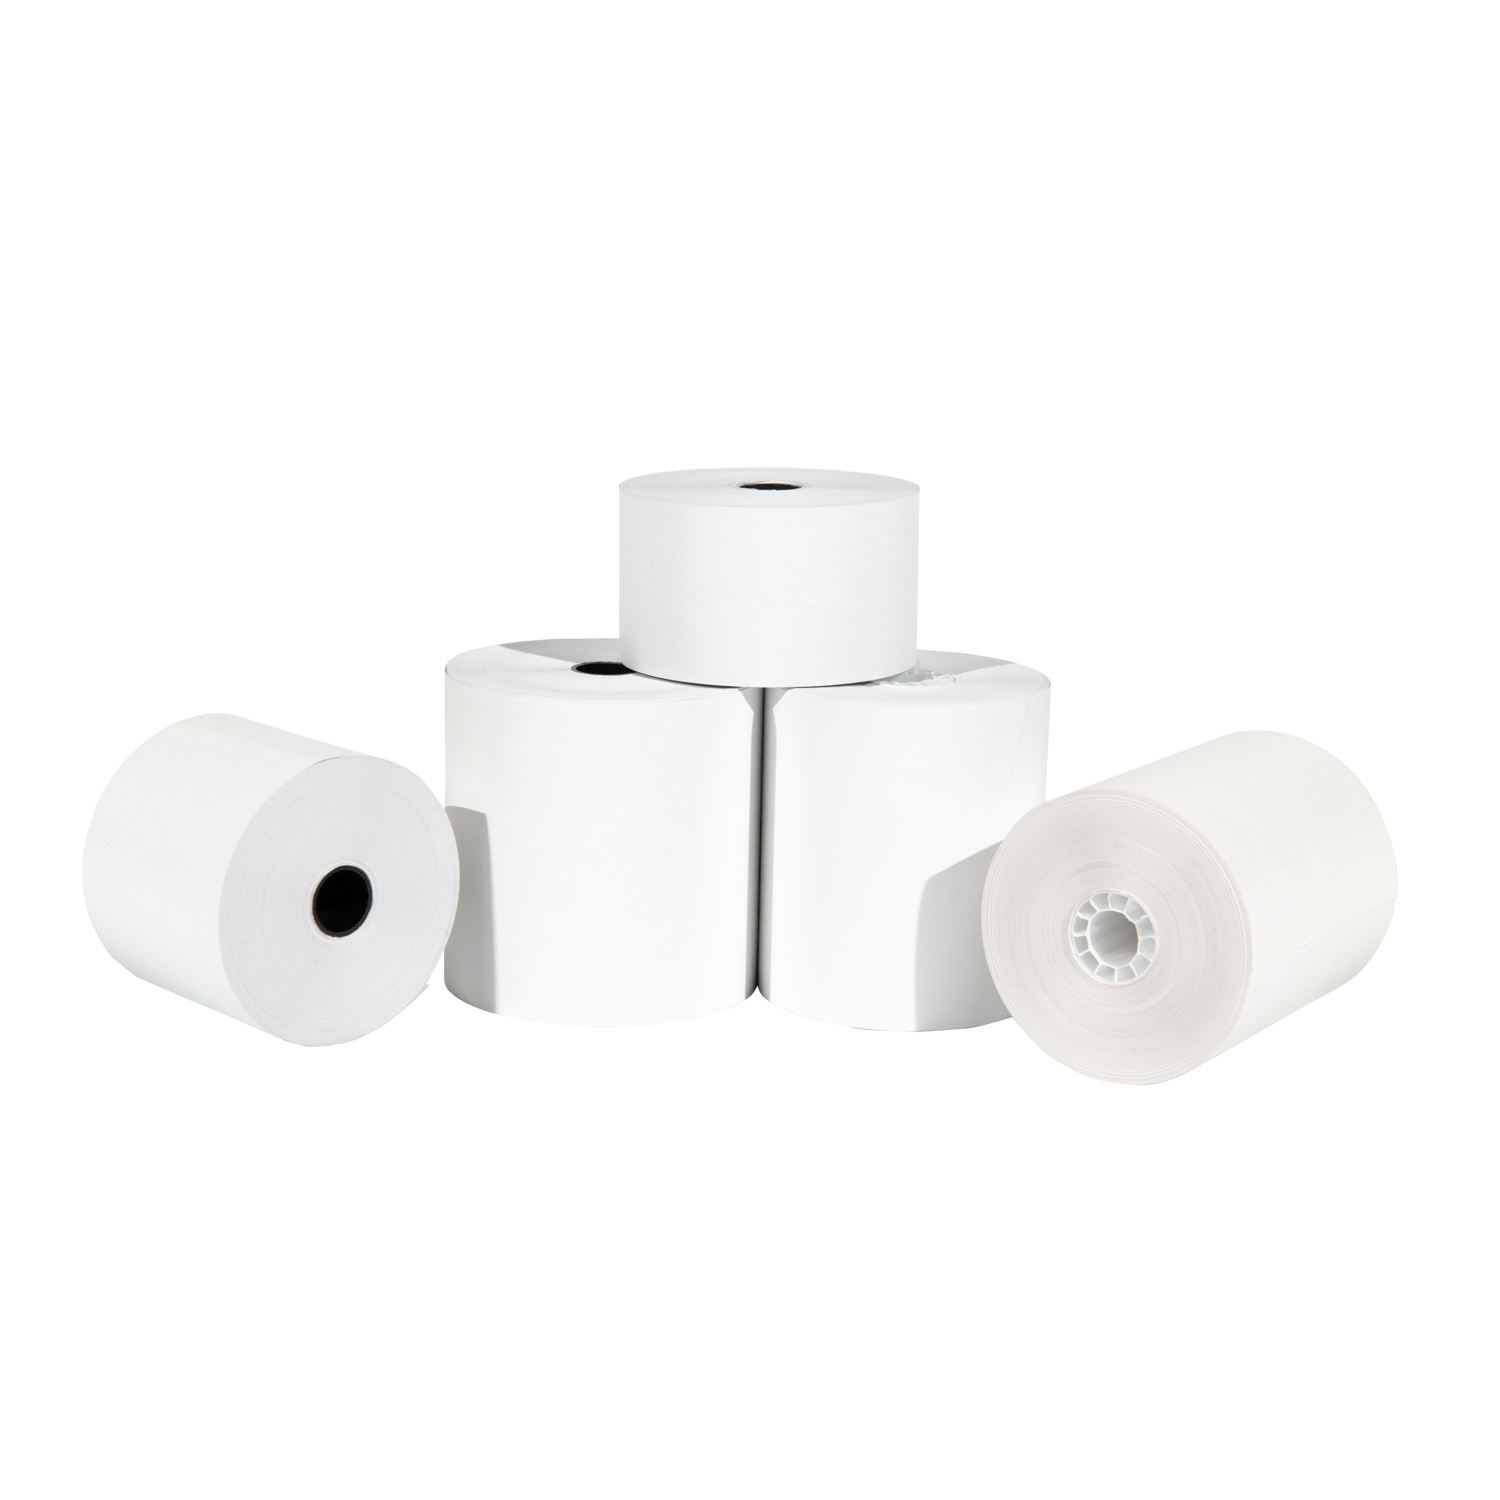 Pos receipt rolls coreless thermal cash register paper rolls 57mm